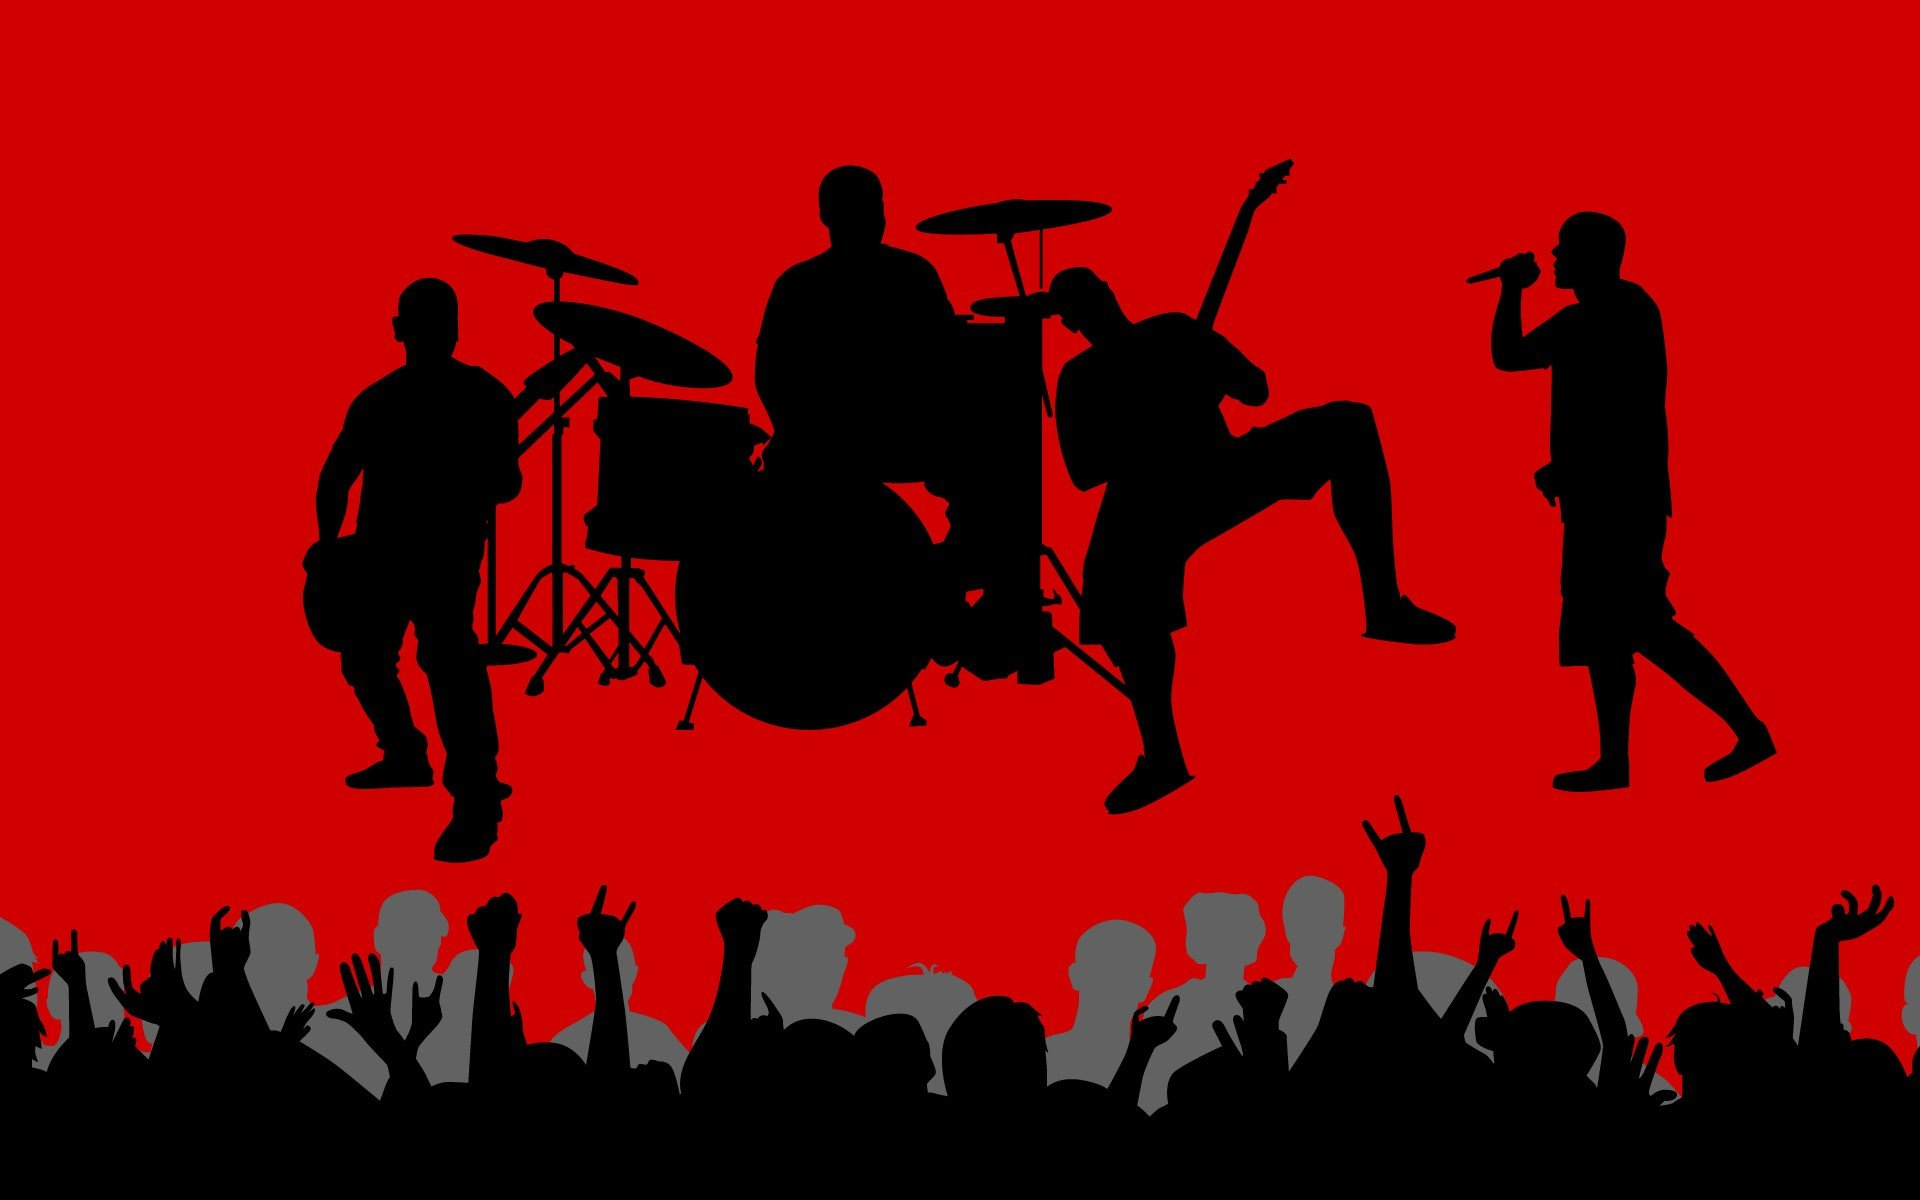 Music vectors shadows crowd band red background wallpaper | 1920x1200 ...